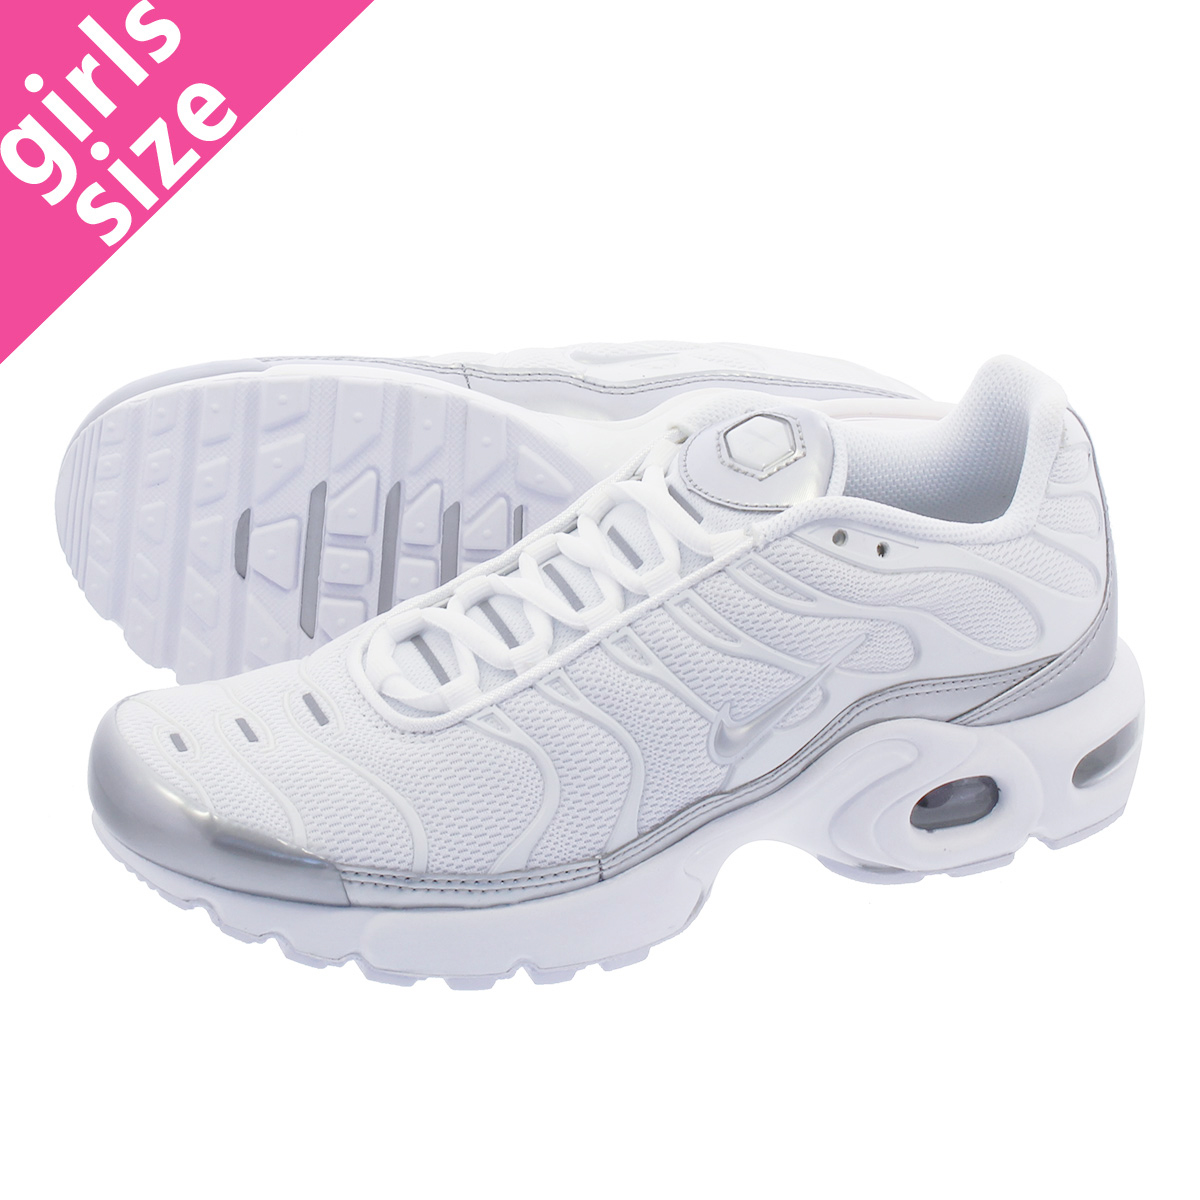 LOWTEX PLUS  NIKE AIR MAX PLUS GS Kie Ney AMAX plus GS WHITE METALLIC  SILVER 655 58e994cac